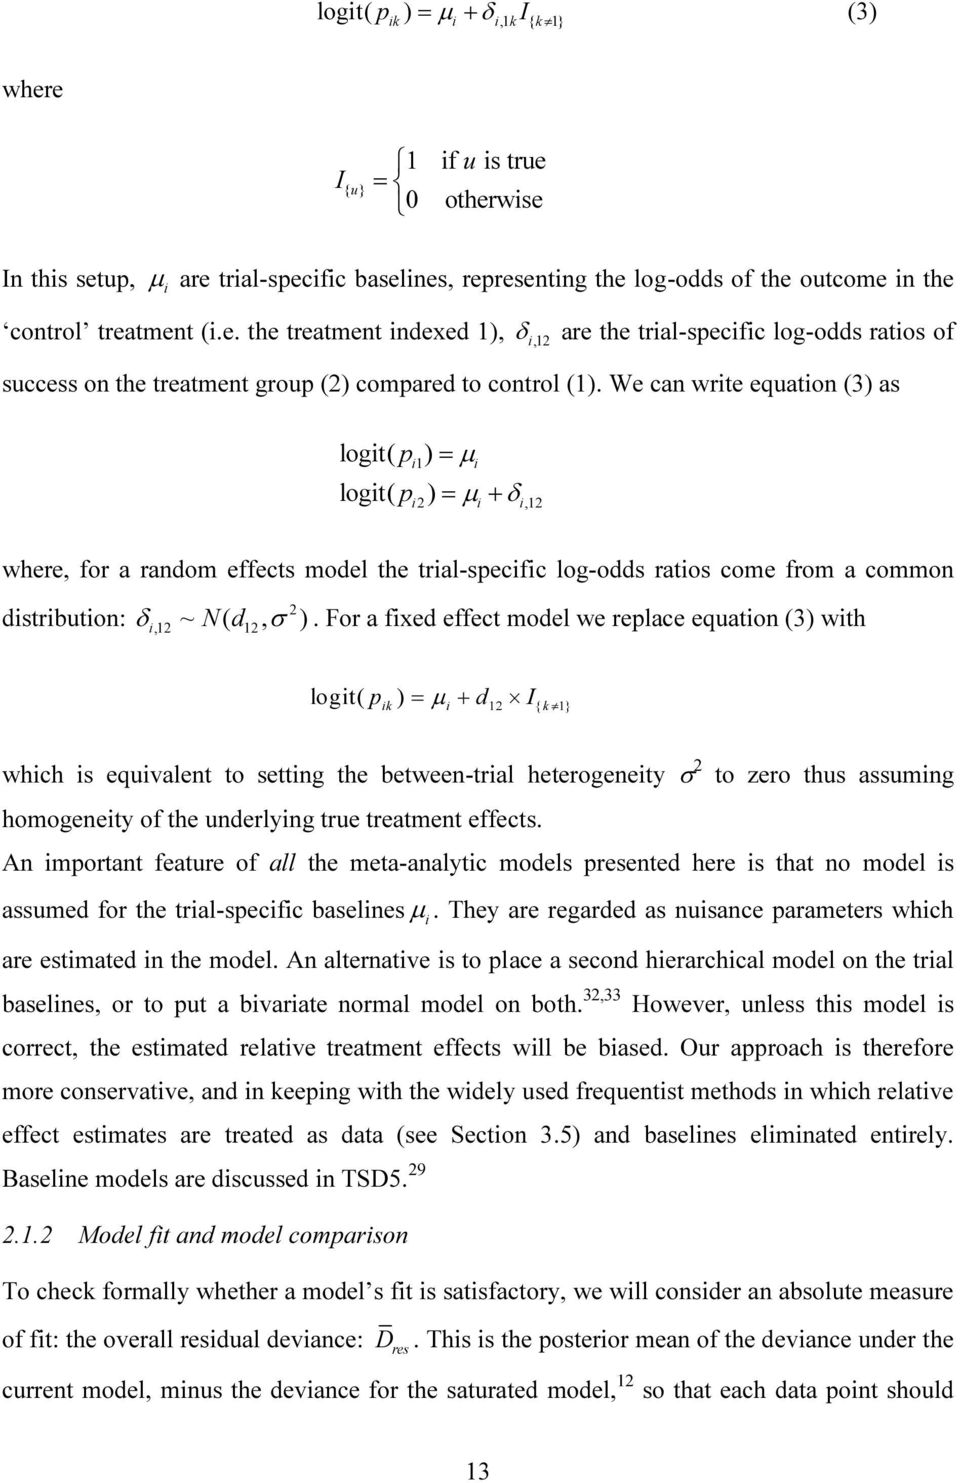 For a fixed effect model we replace equation (3) with 2 i,12 ~ N ( d12, ) logit( p ) d I ik = µ i + 12 { k 1 which is equivalent to setting the between-trial heterogeneity σ 2 homogeneity of the